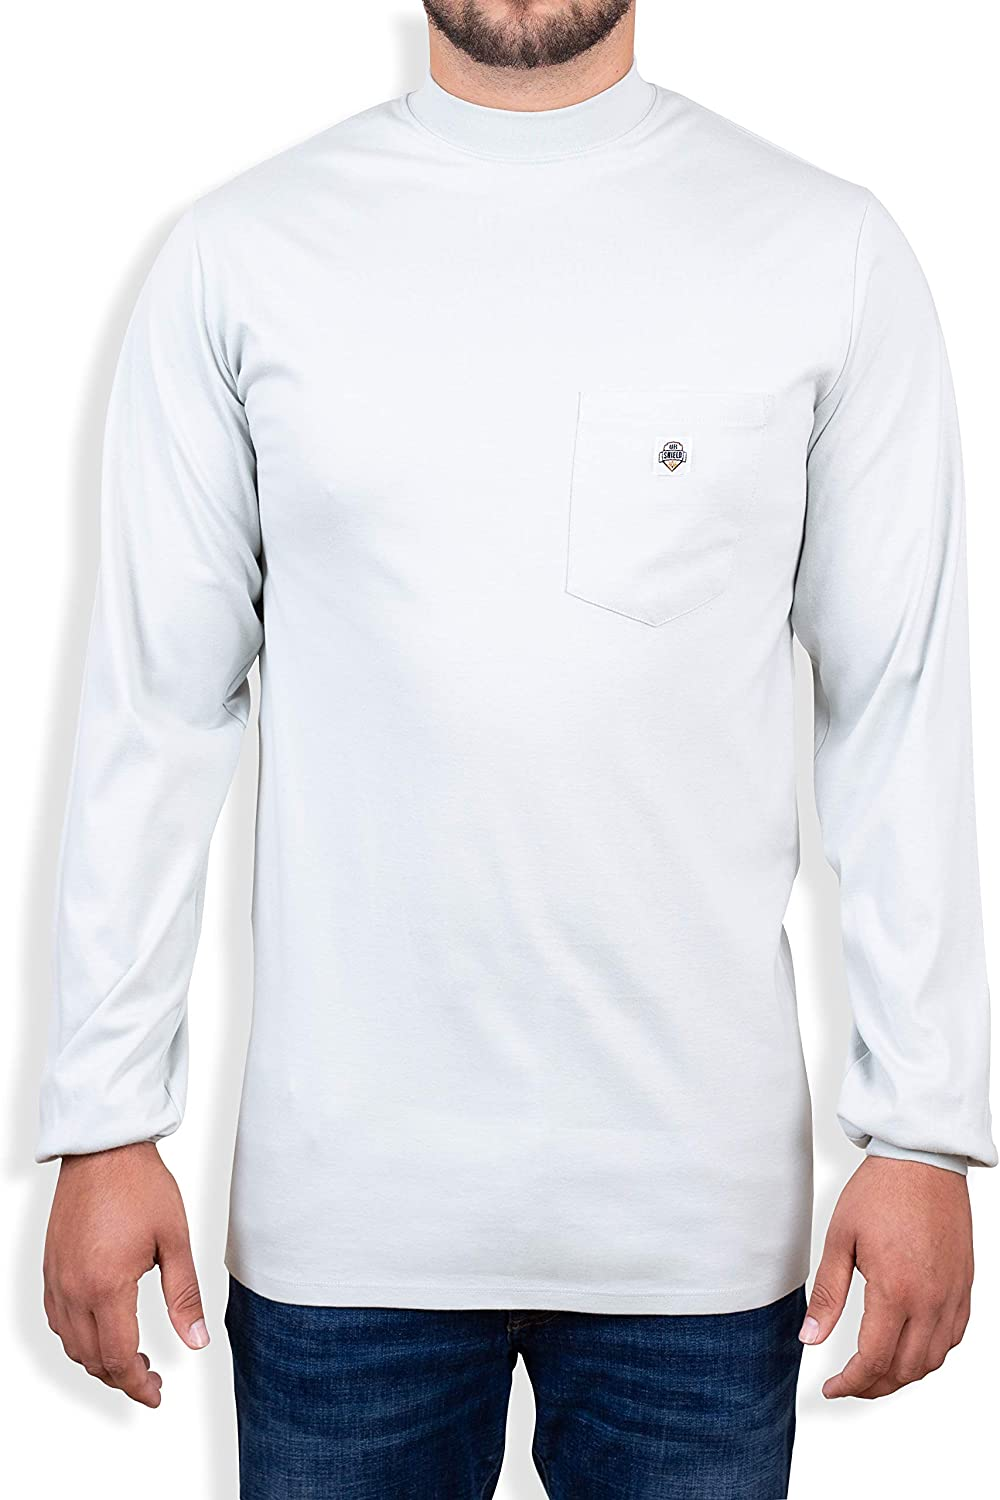 Limited price sale Ur Shield Fire Resistant 7 oz. Cotton FR Long NEW before selling ☆ - T-Shirt Sleeve T